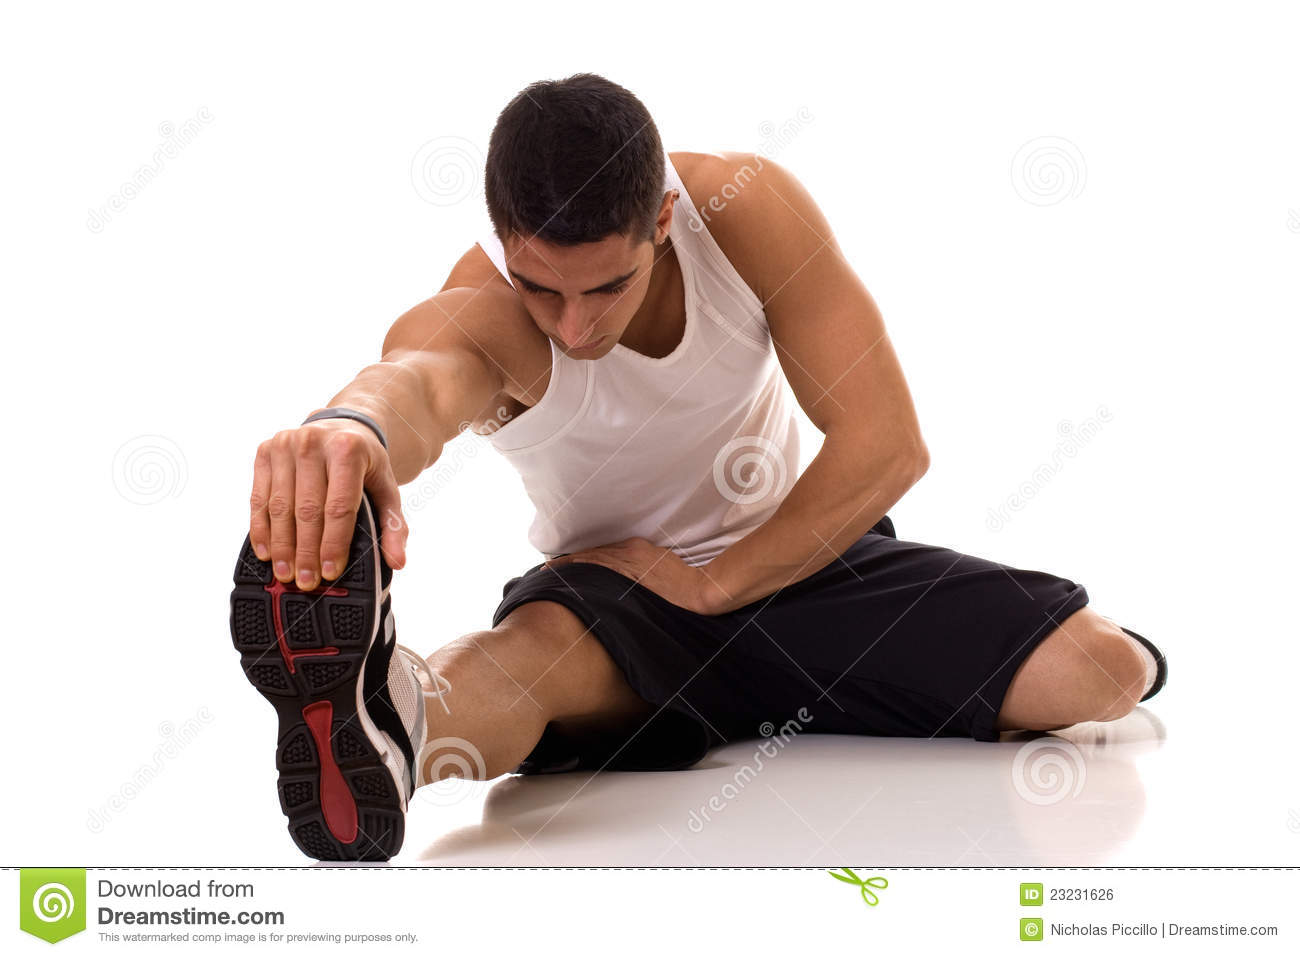 Sitting Hamstring Stretch Royalty Free Stock Image - Image: 23231626